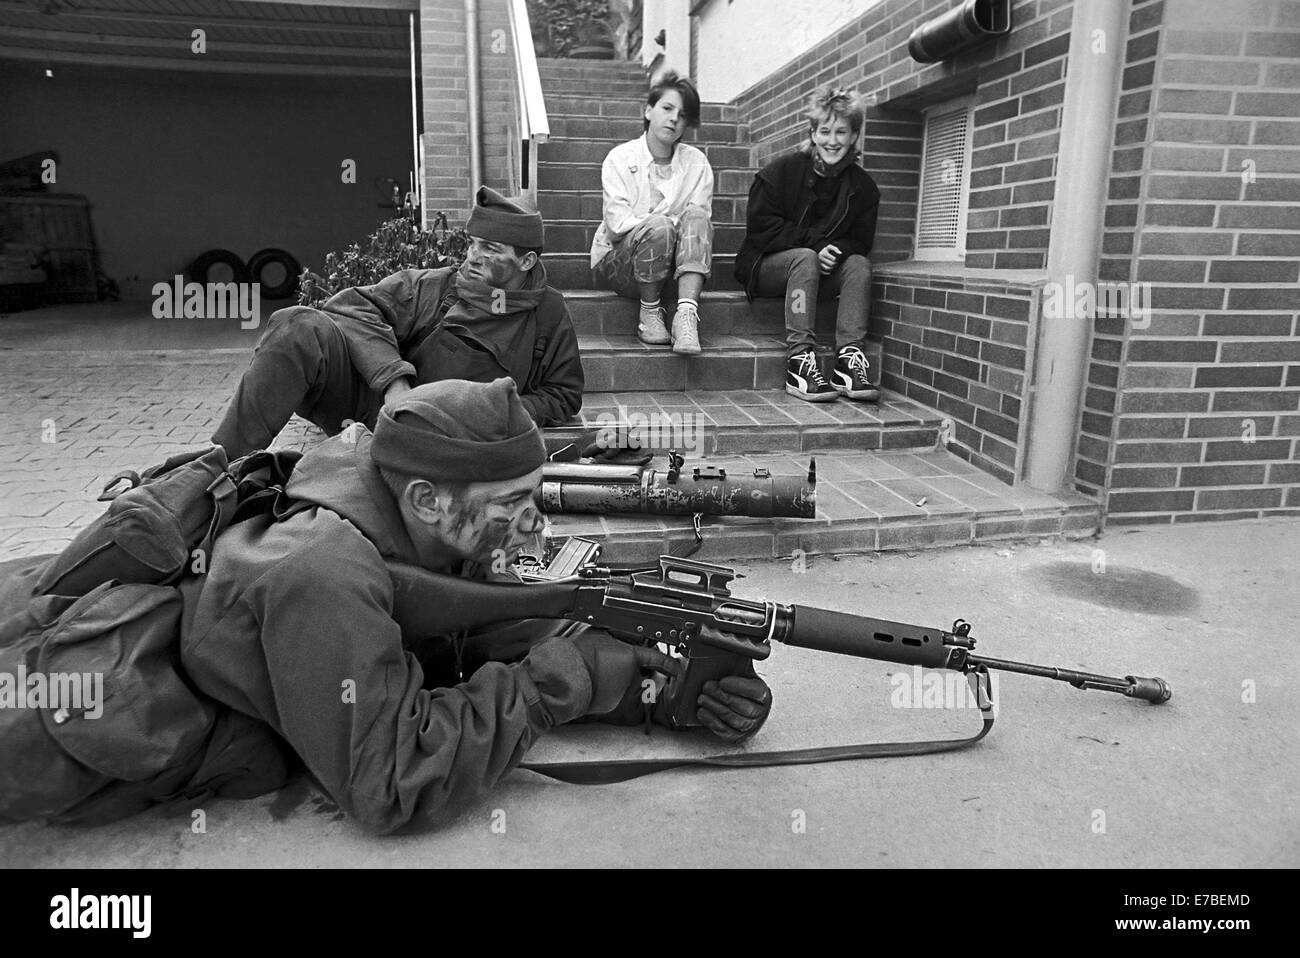 NATO exercises in Germany, British Army soldiers in a village (September 1985) - Stock Image